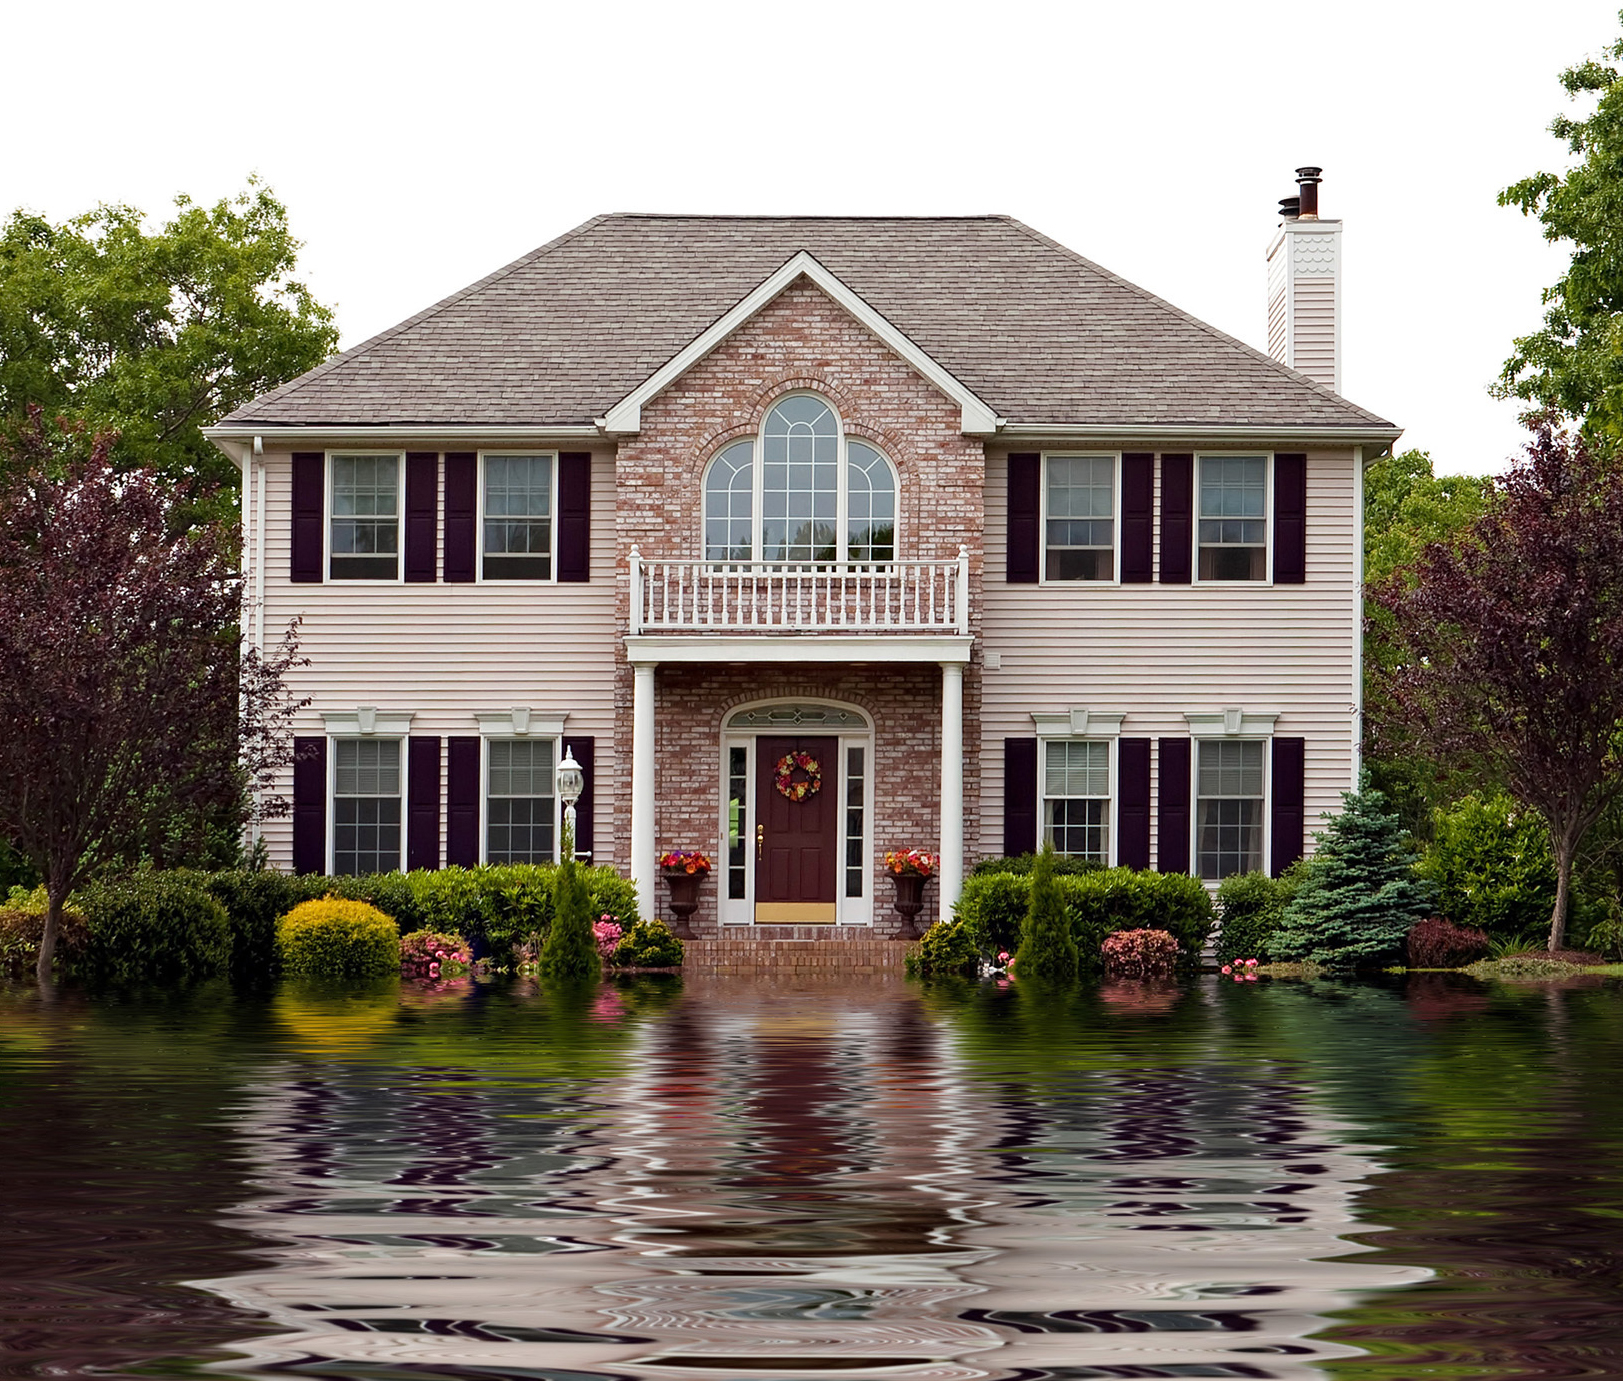 A flooded home with flood insurance